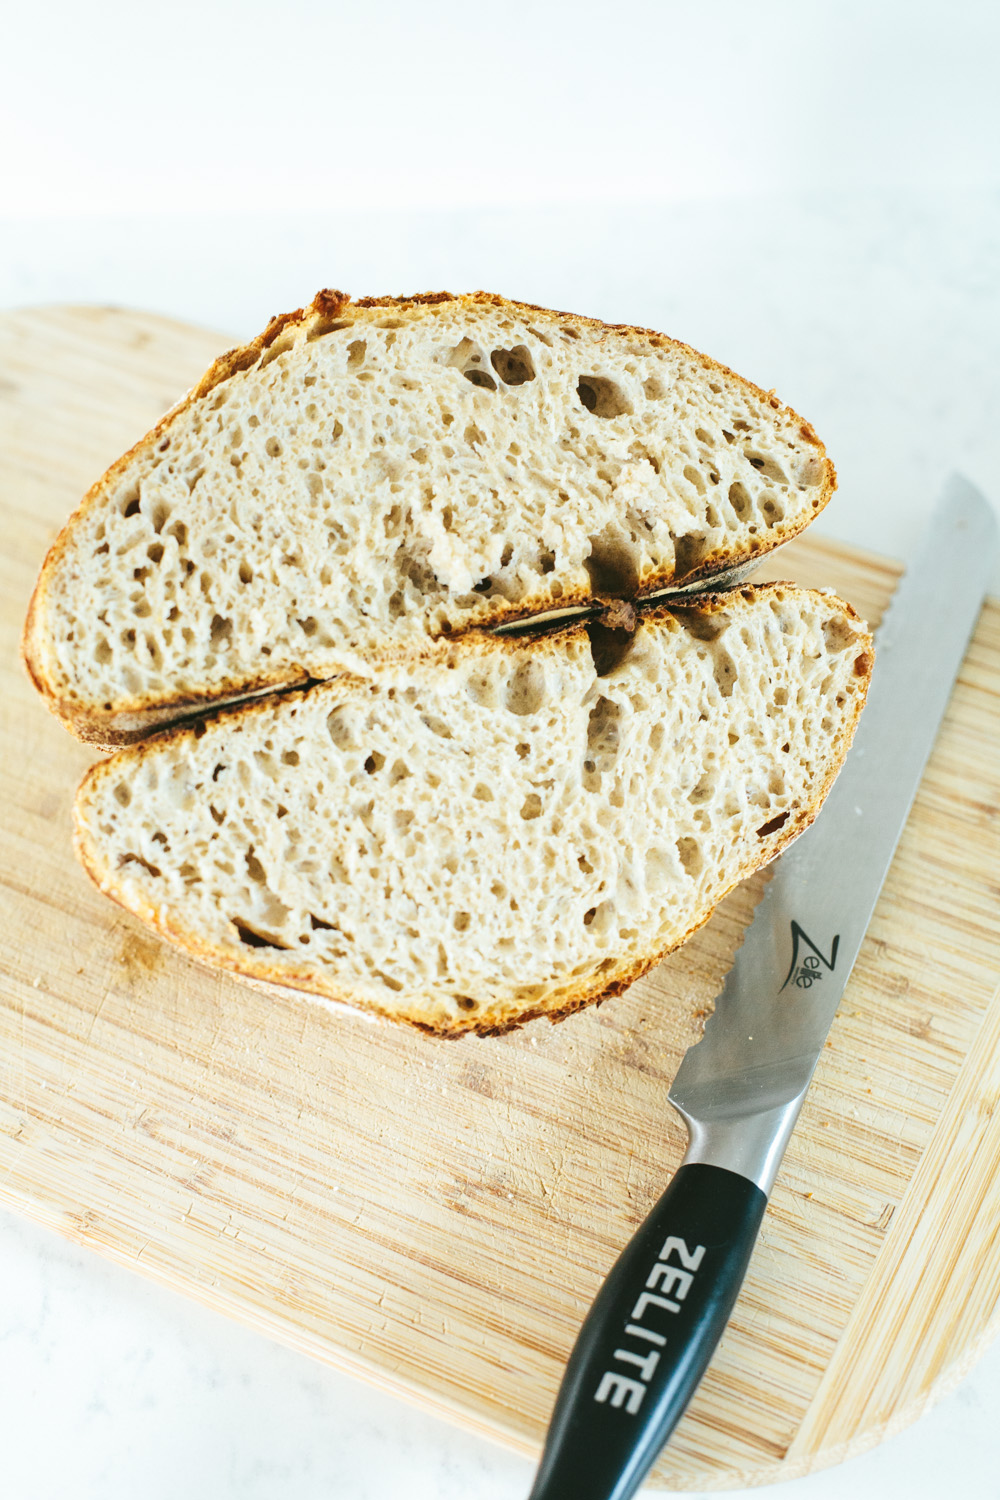 naturally leavened long fermented sourdough bread